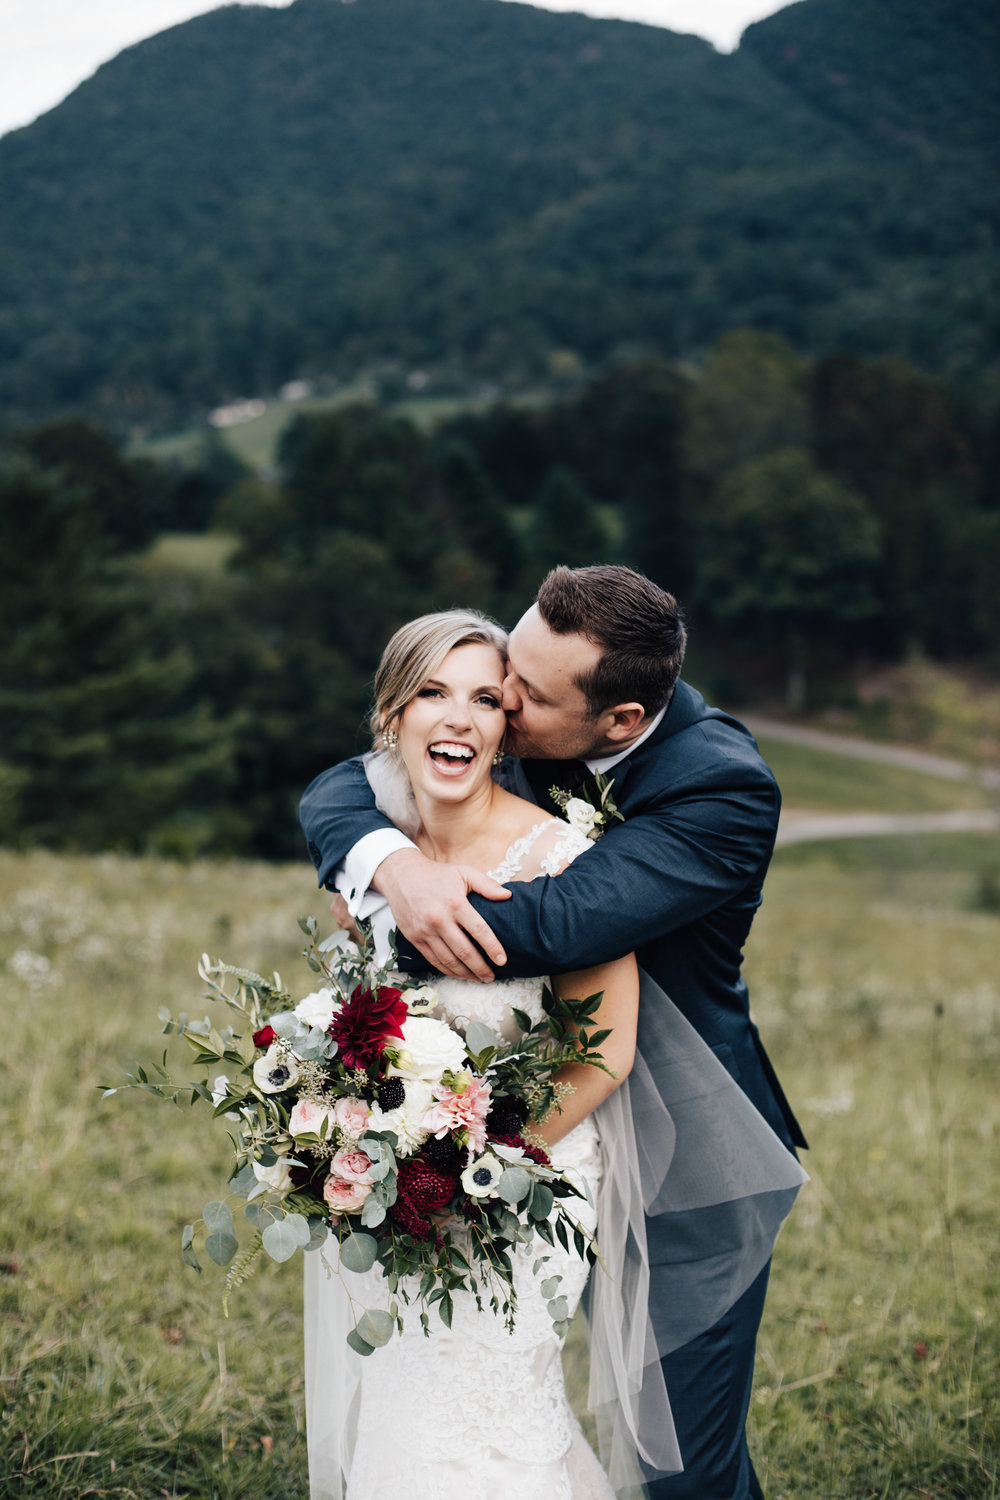 Amanda Sutton Photography  |  Herr Floral